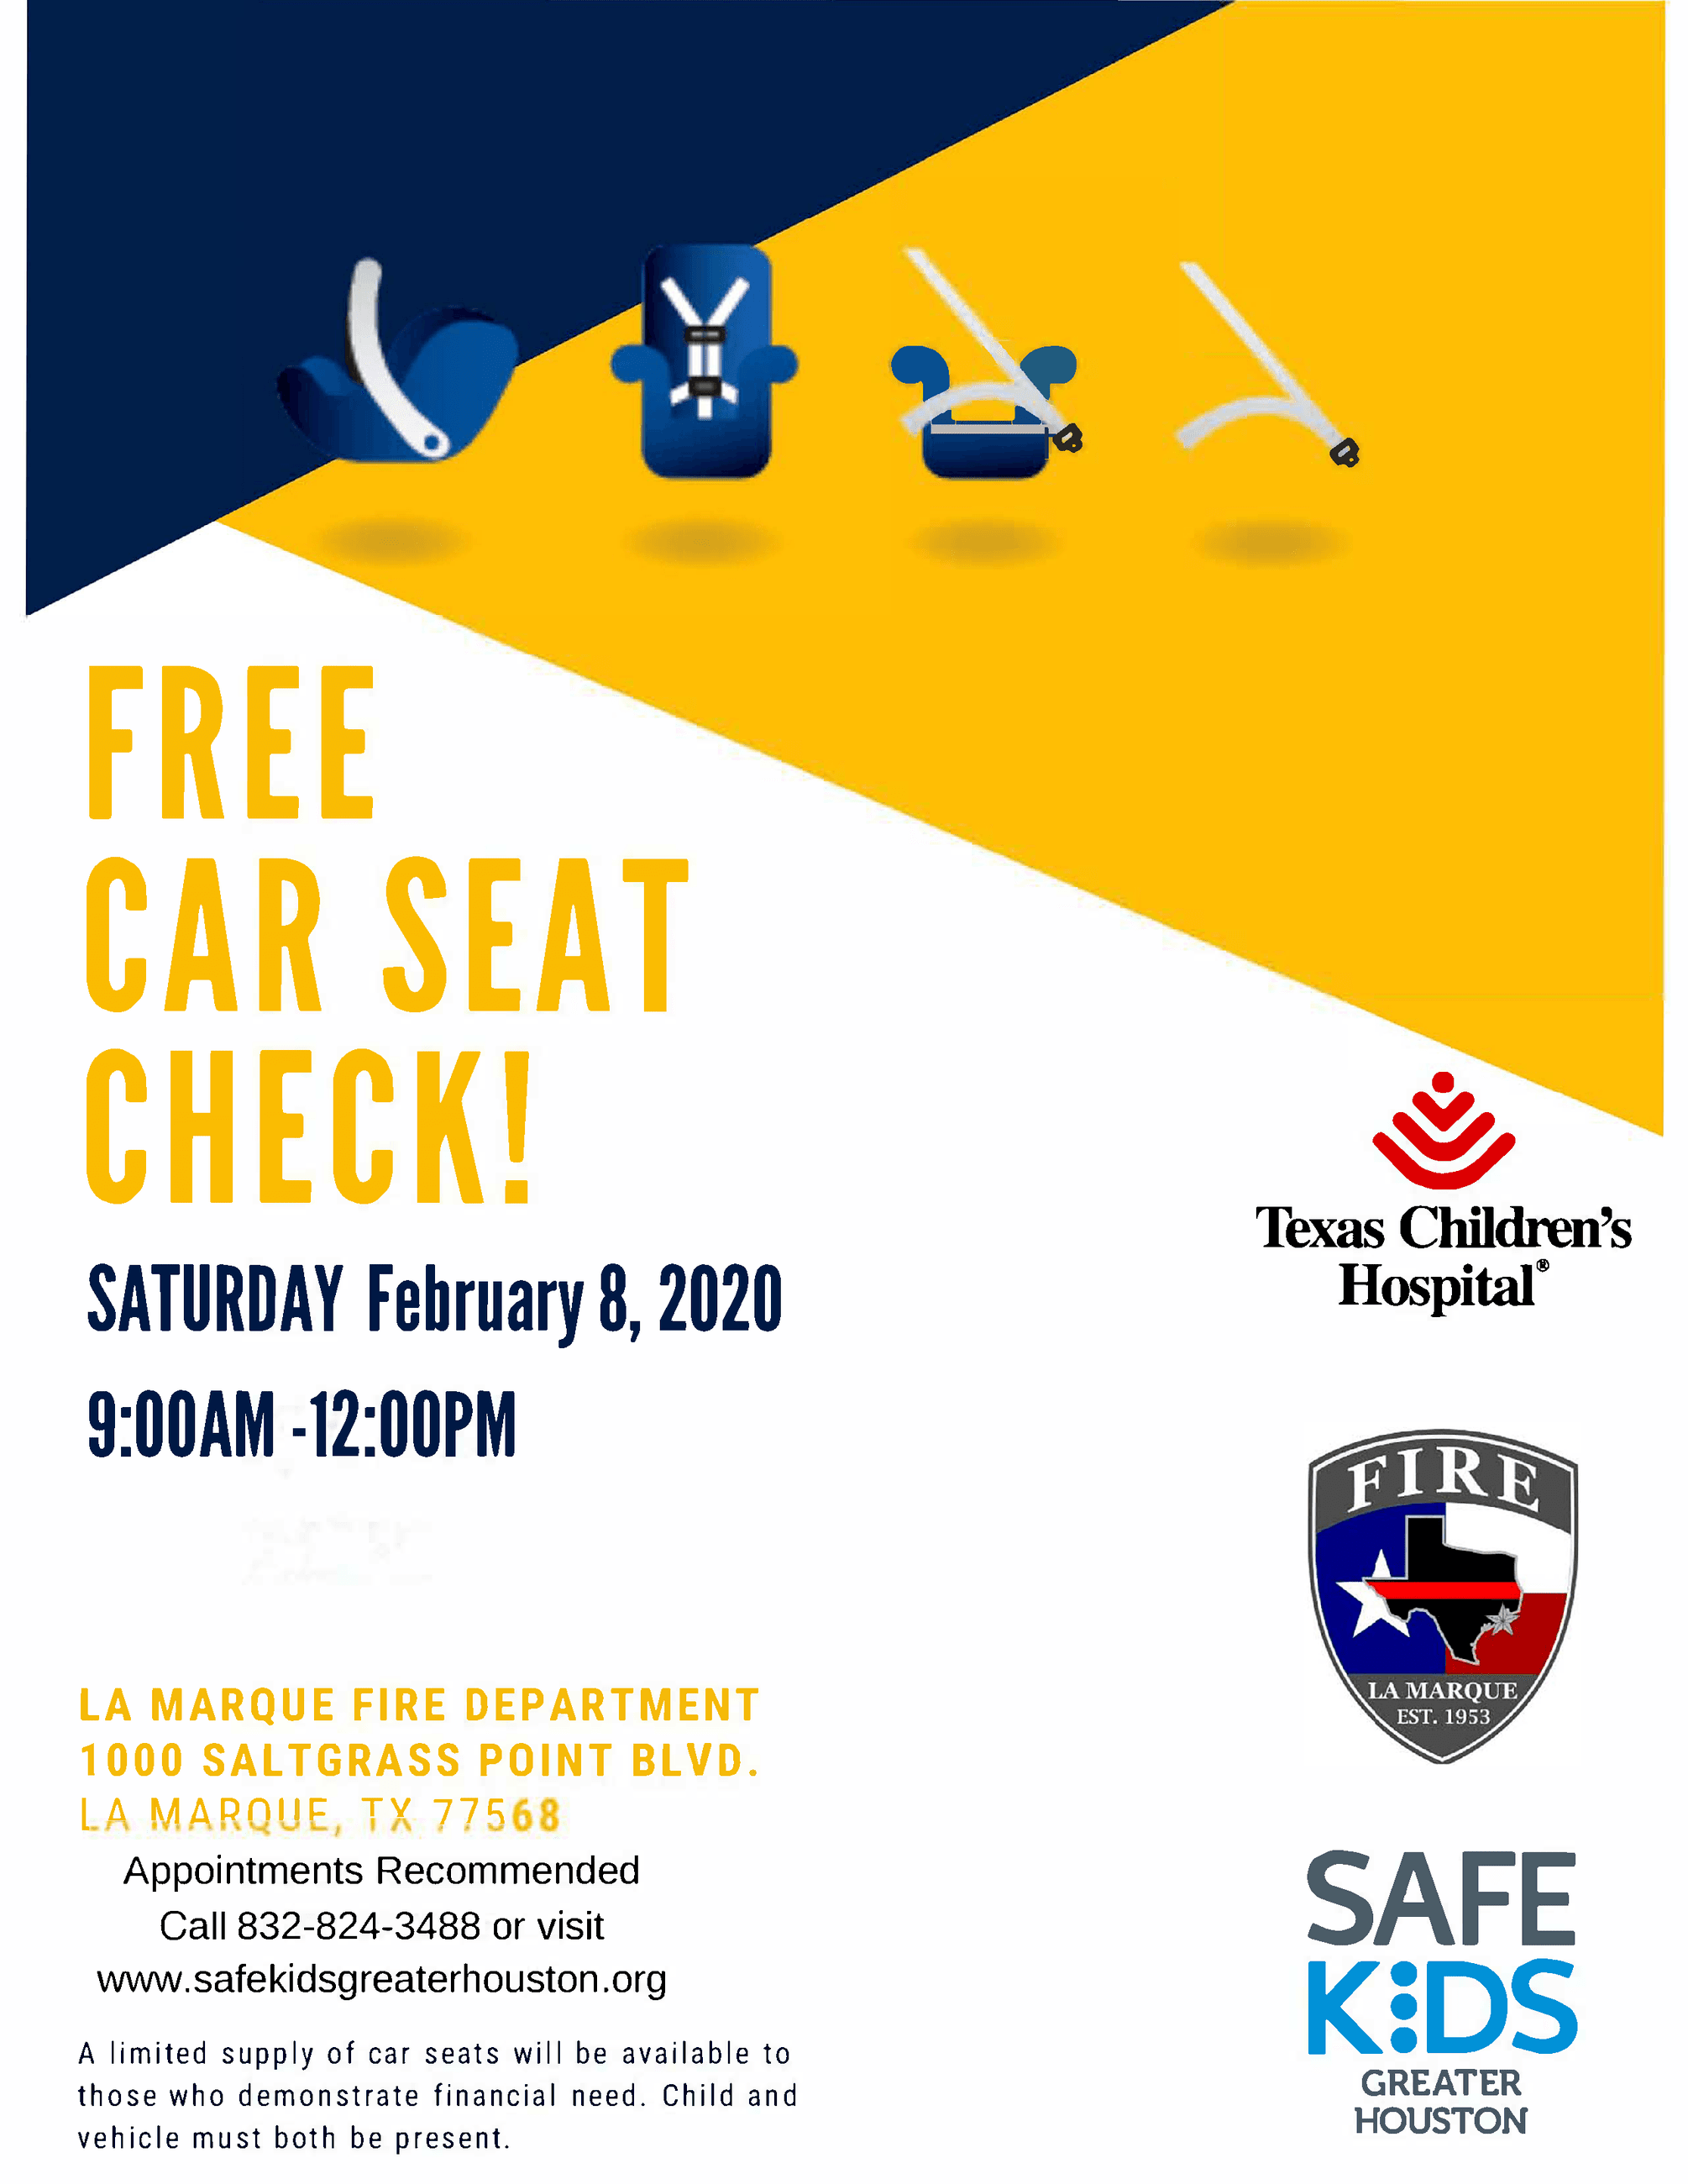 Car Seat Event_Feb 8 2020_LMFD